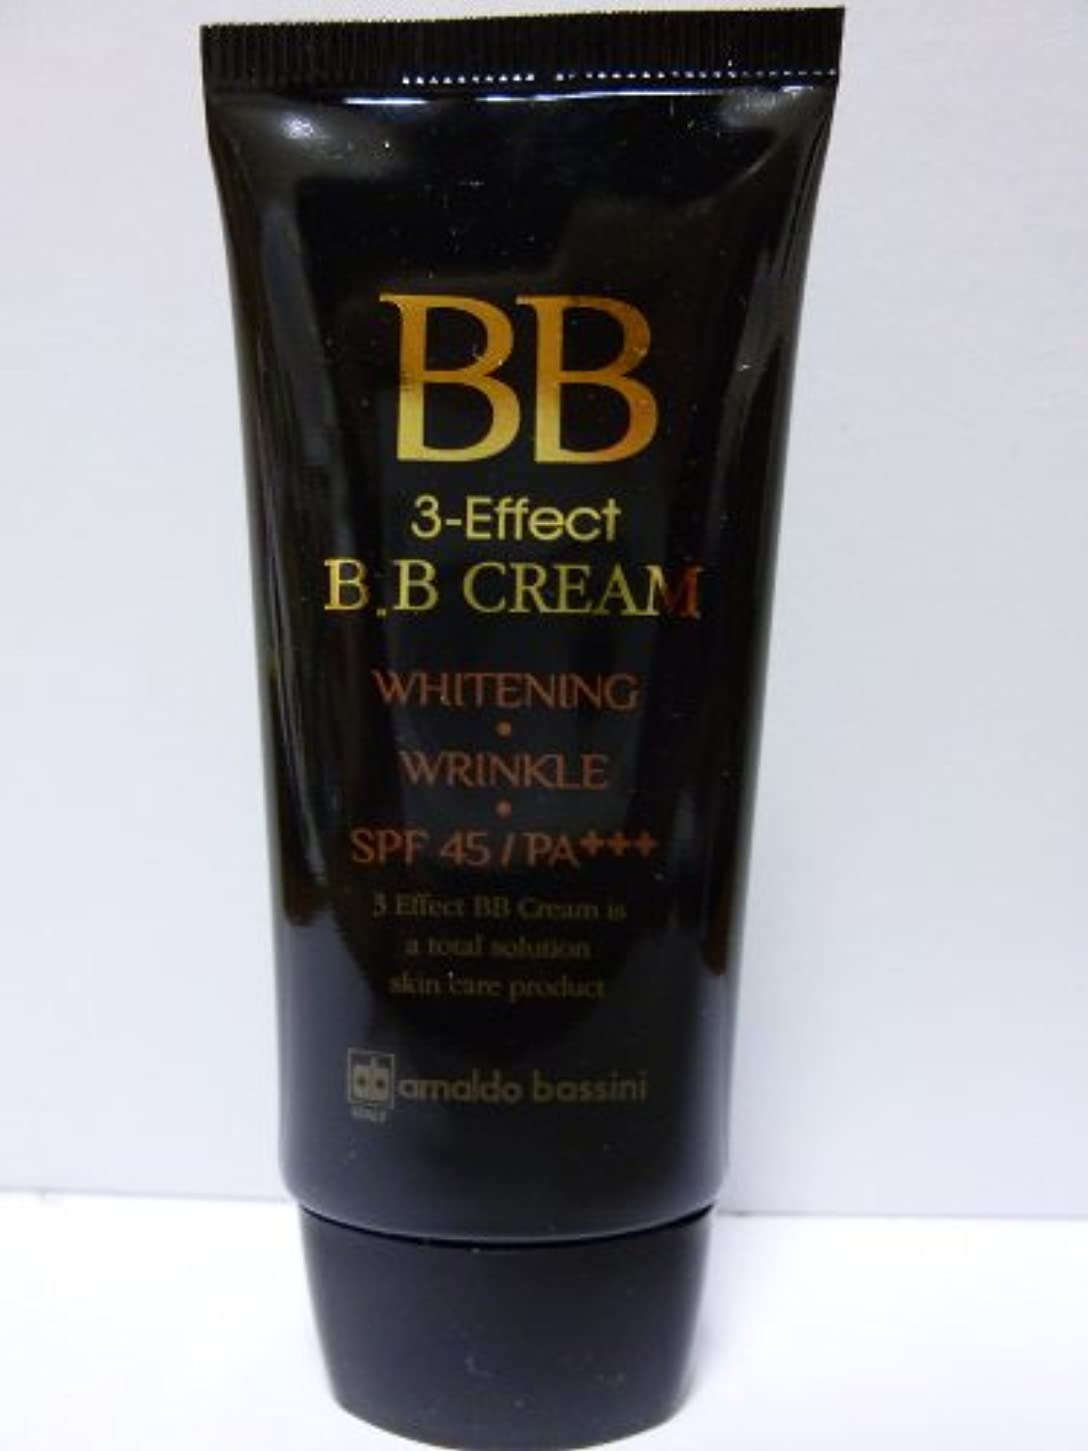 BB 3-Effect B.B CREAM